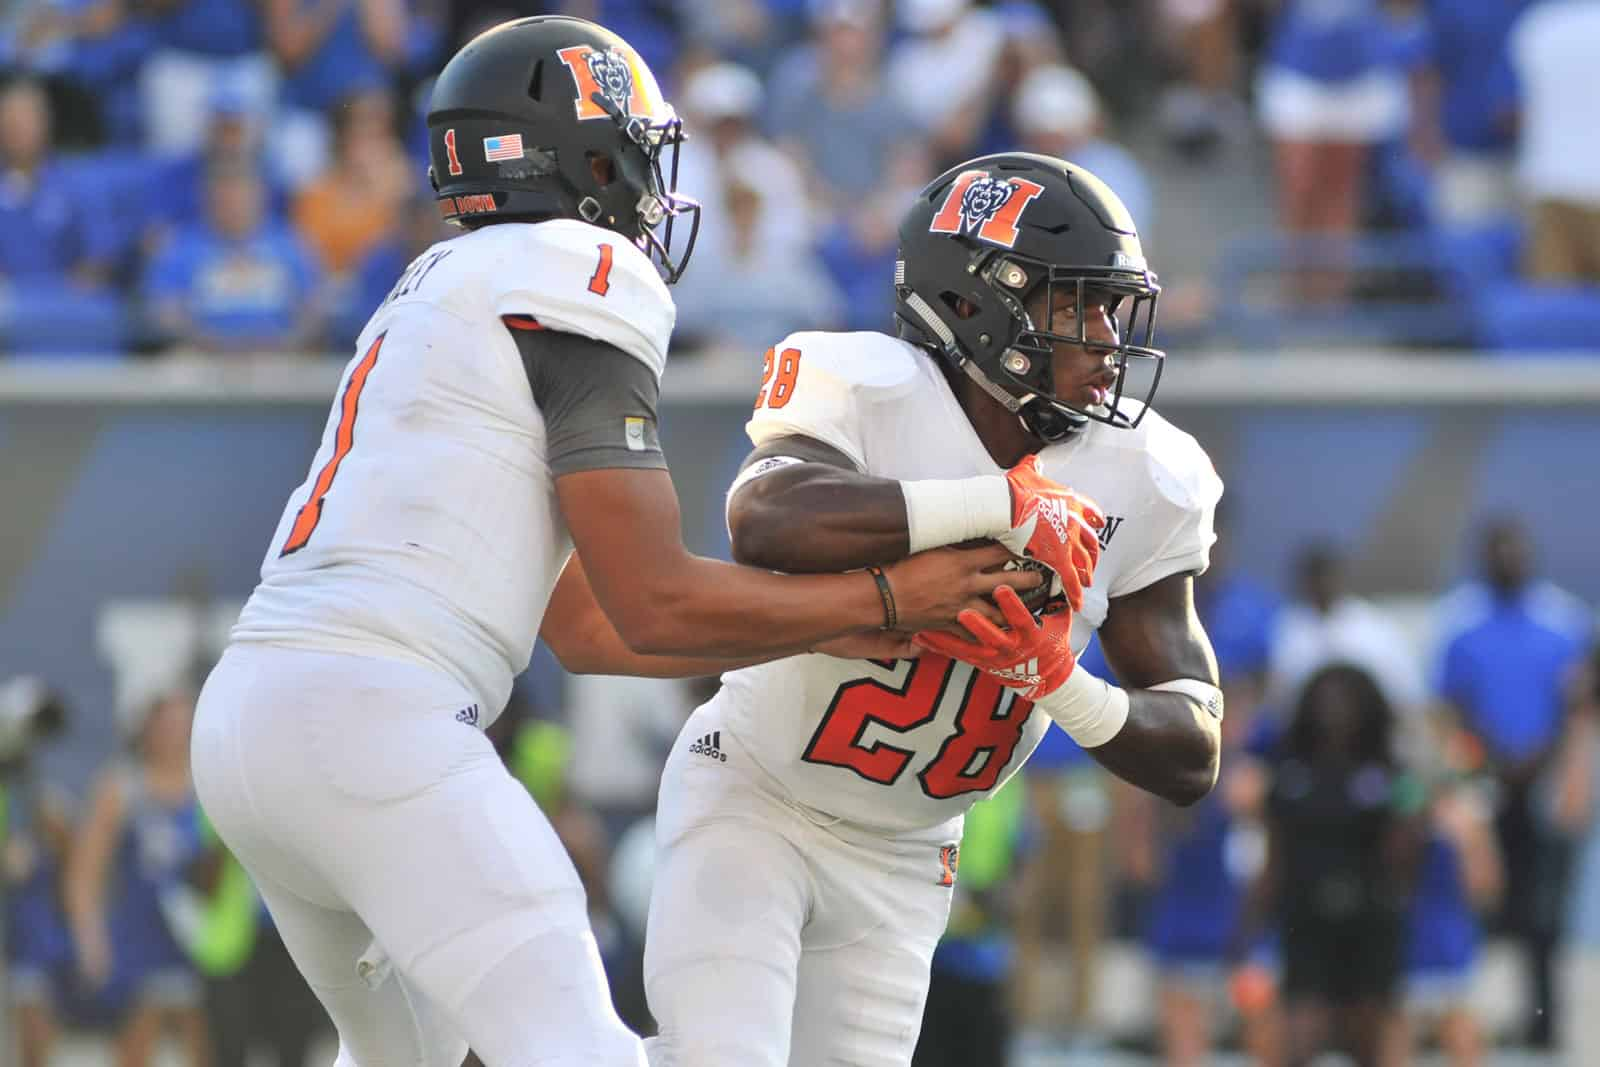 100% authentic 92b4c 79c4c Mercer announces 2019 football schedule